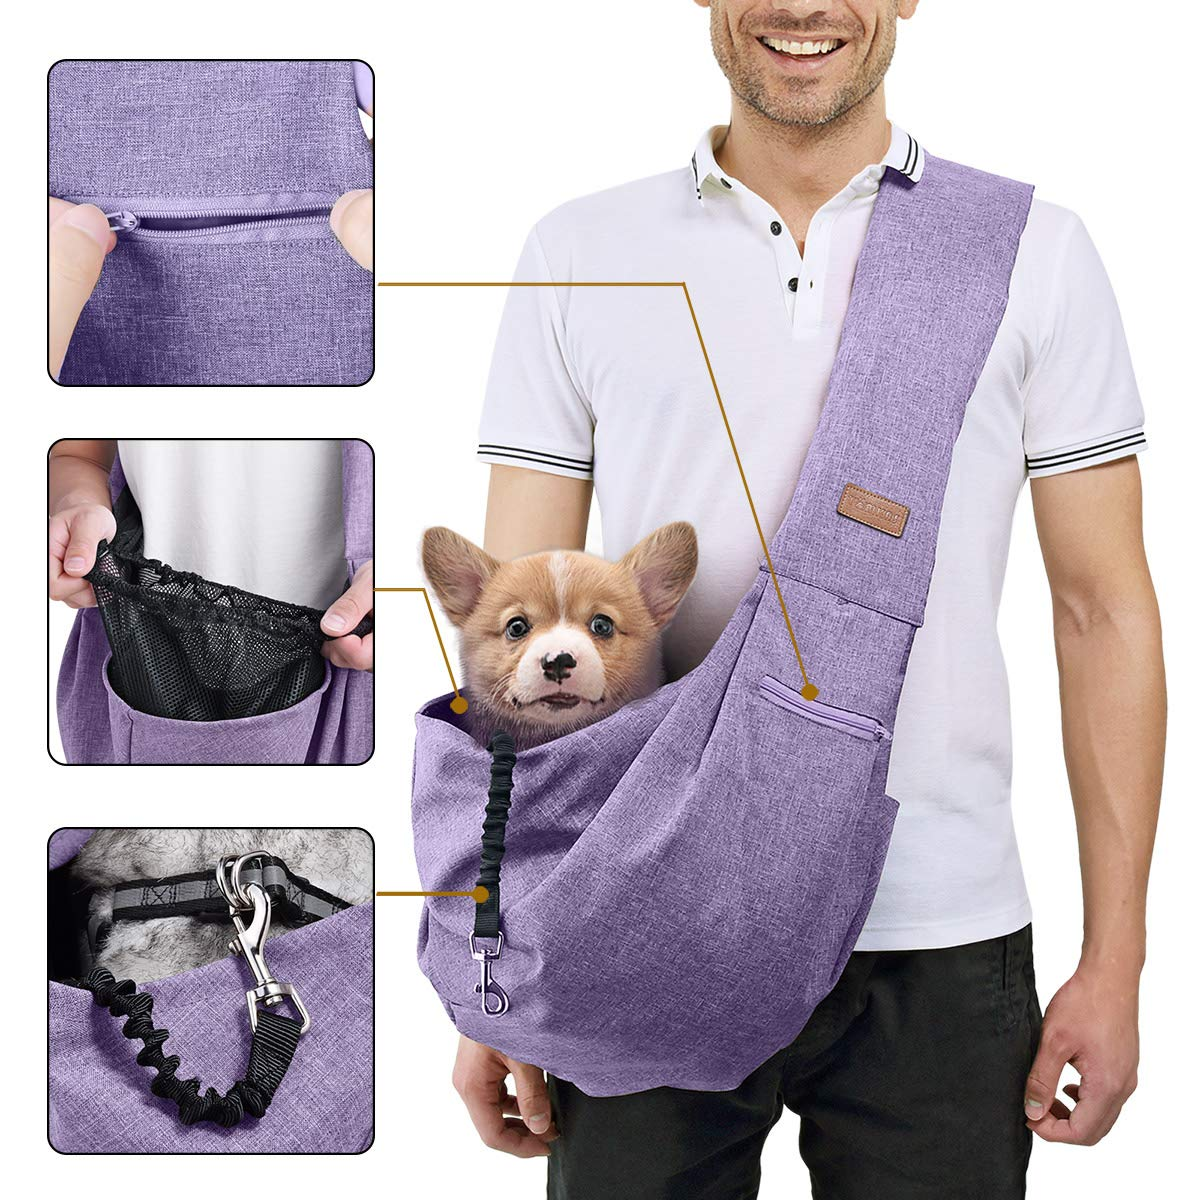 TOMKAS Small Medium Dog Cat Carrier Sling Pet Puppy Outdoor Travel Bag Tote with Mesh and Pocket (Purple for 8-15 lbs)